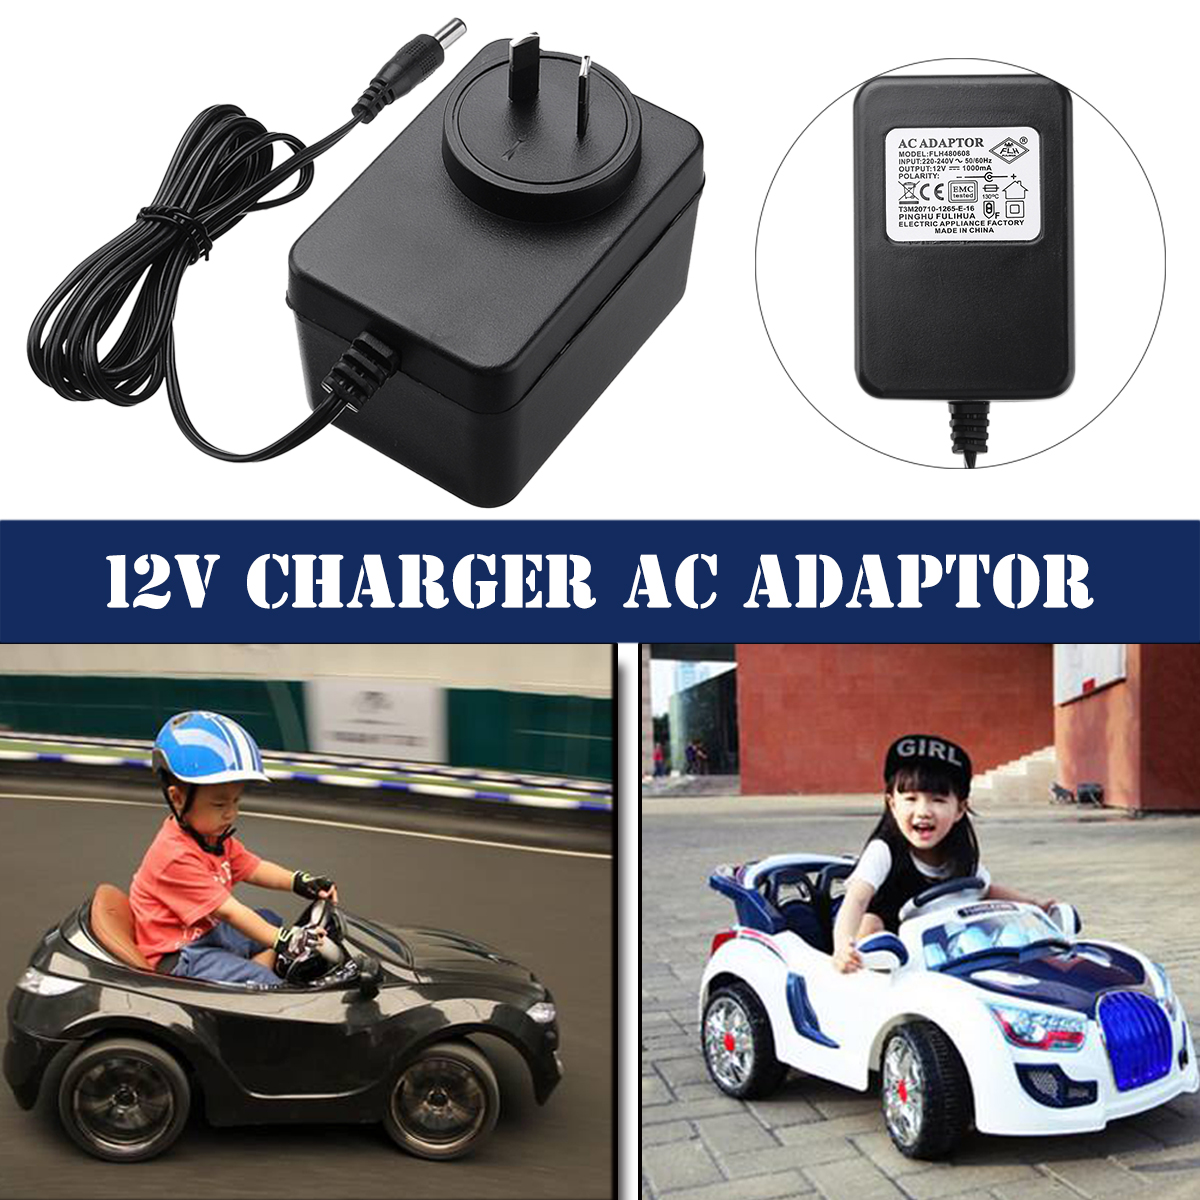 3c8454a2dc4 Details about 12V 1000mA Battery Charger AC Adapter For Kids Electric Ride  On Car Bike Scooter